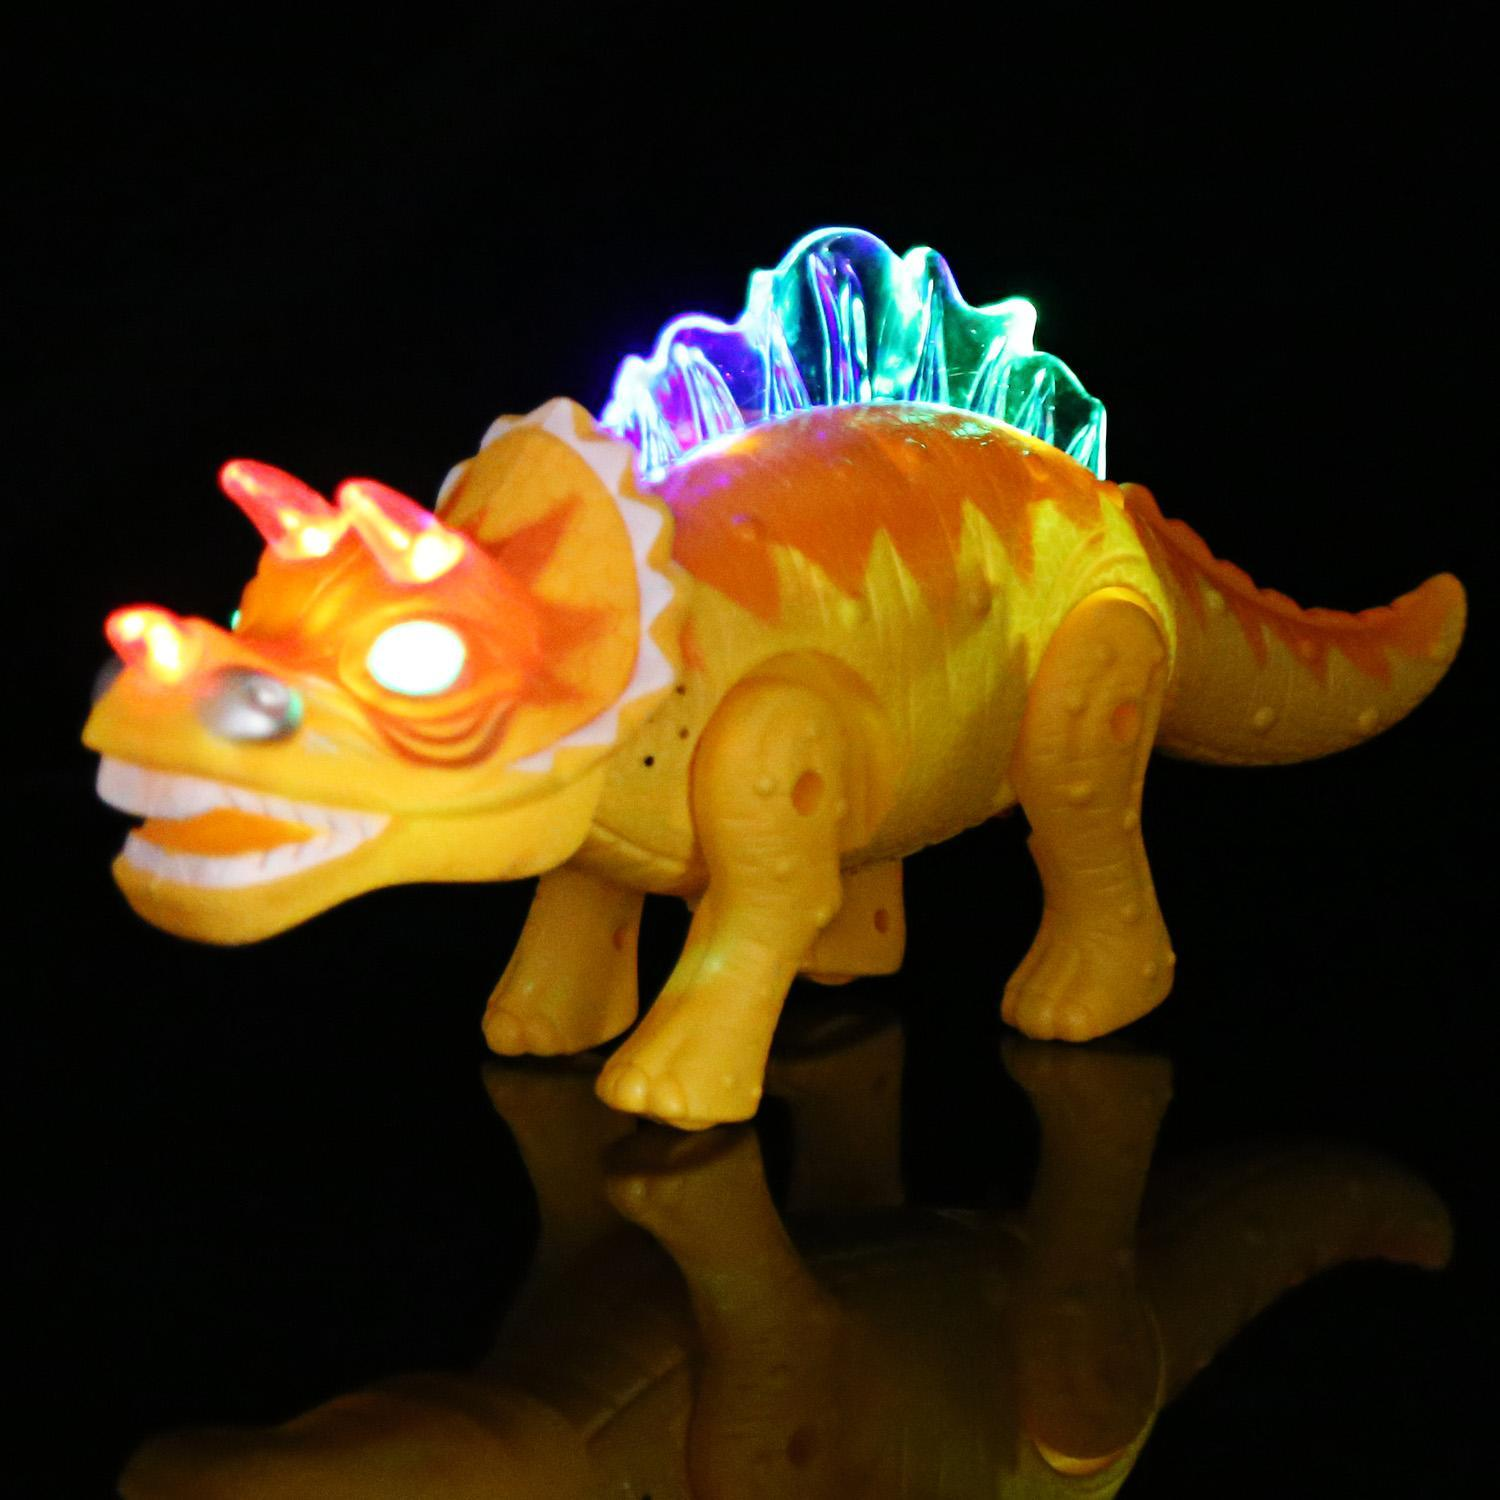 Battery Powered Triceratops Dinosaur Toy Realistic with Sounds Fun Lights Walks and Roars 3